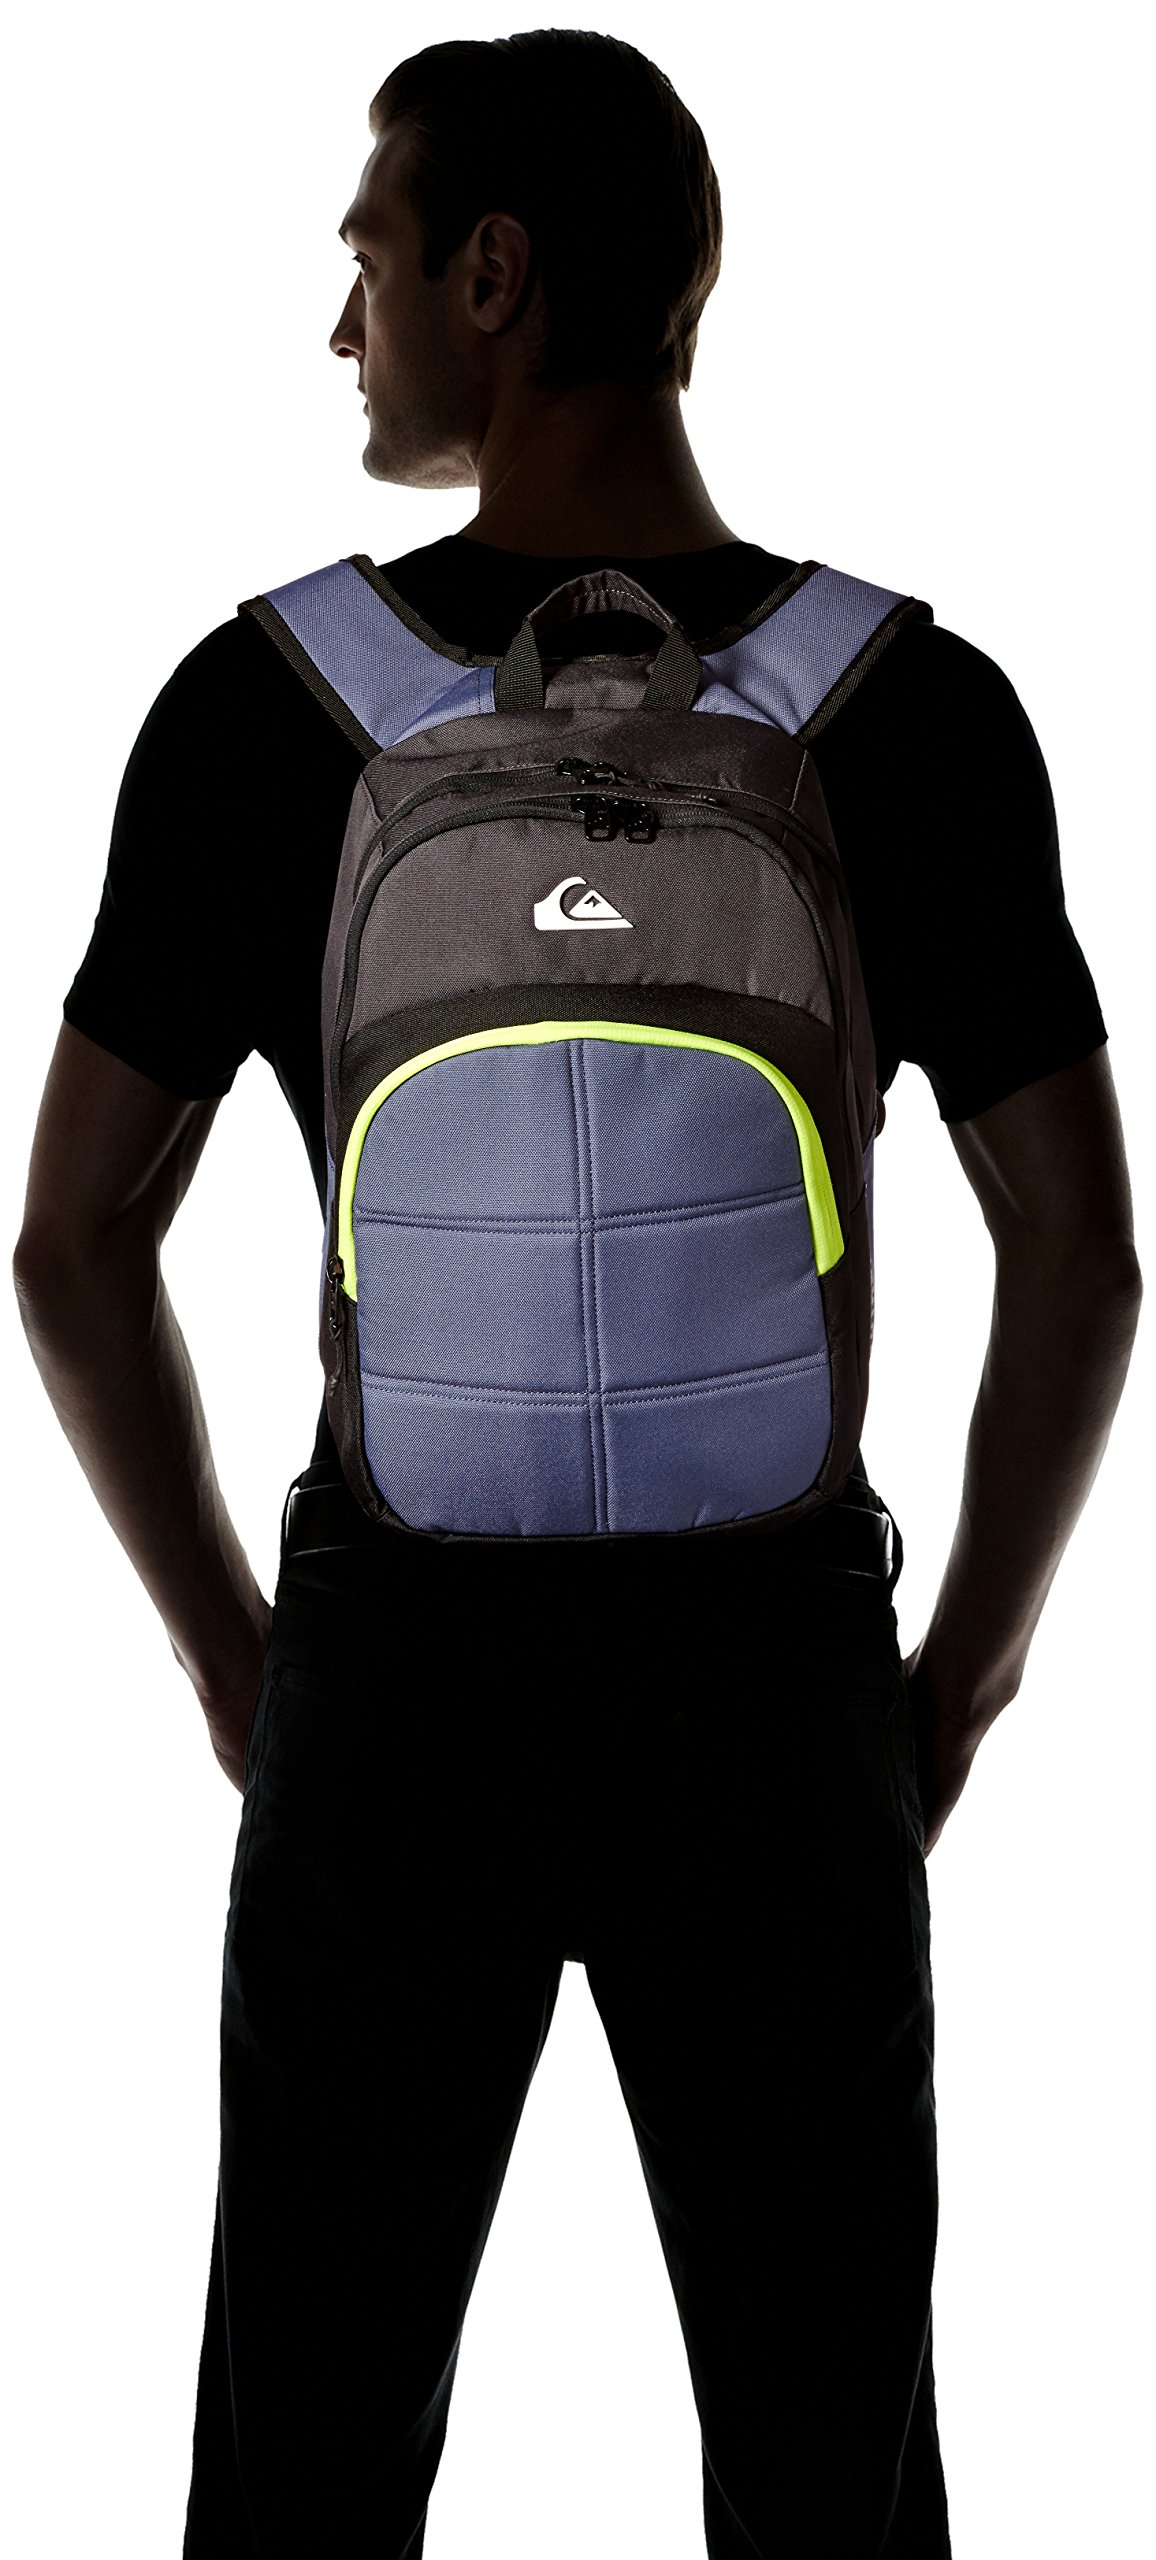 Quiksilver Unisex Burst Backpack, Night Shadow Blue, One Size by Quiksilver (Image #5)